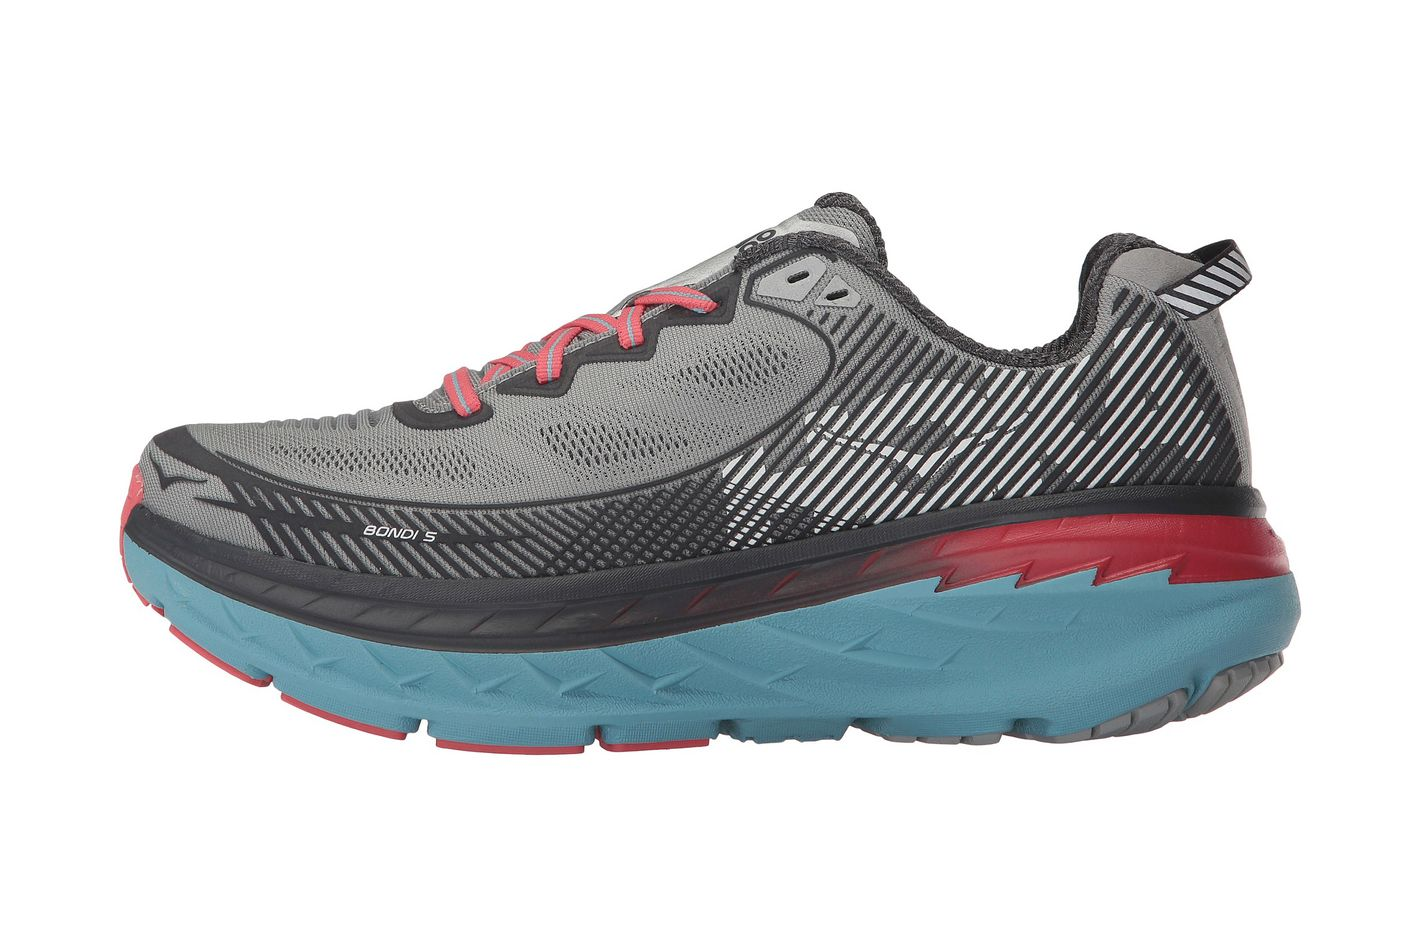 running comforter of comfortable gear download shoes best most strikingly patrol the inpiration athletic corner